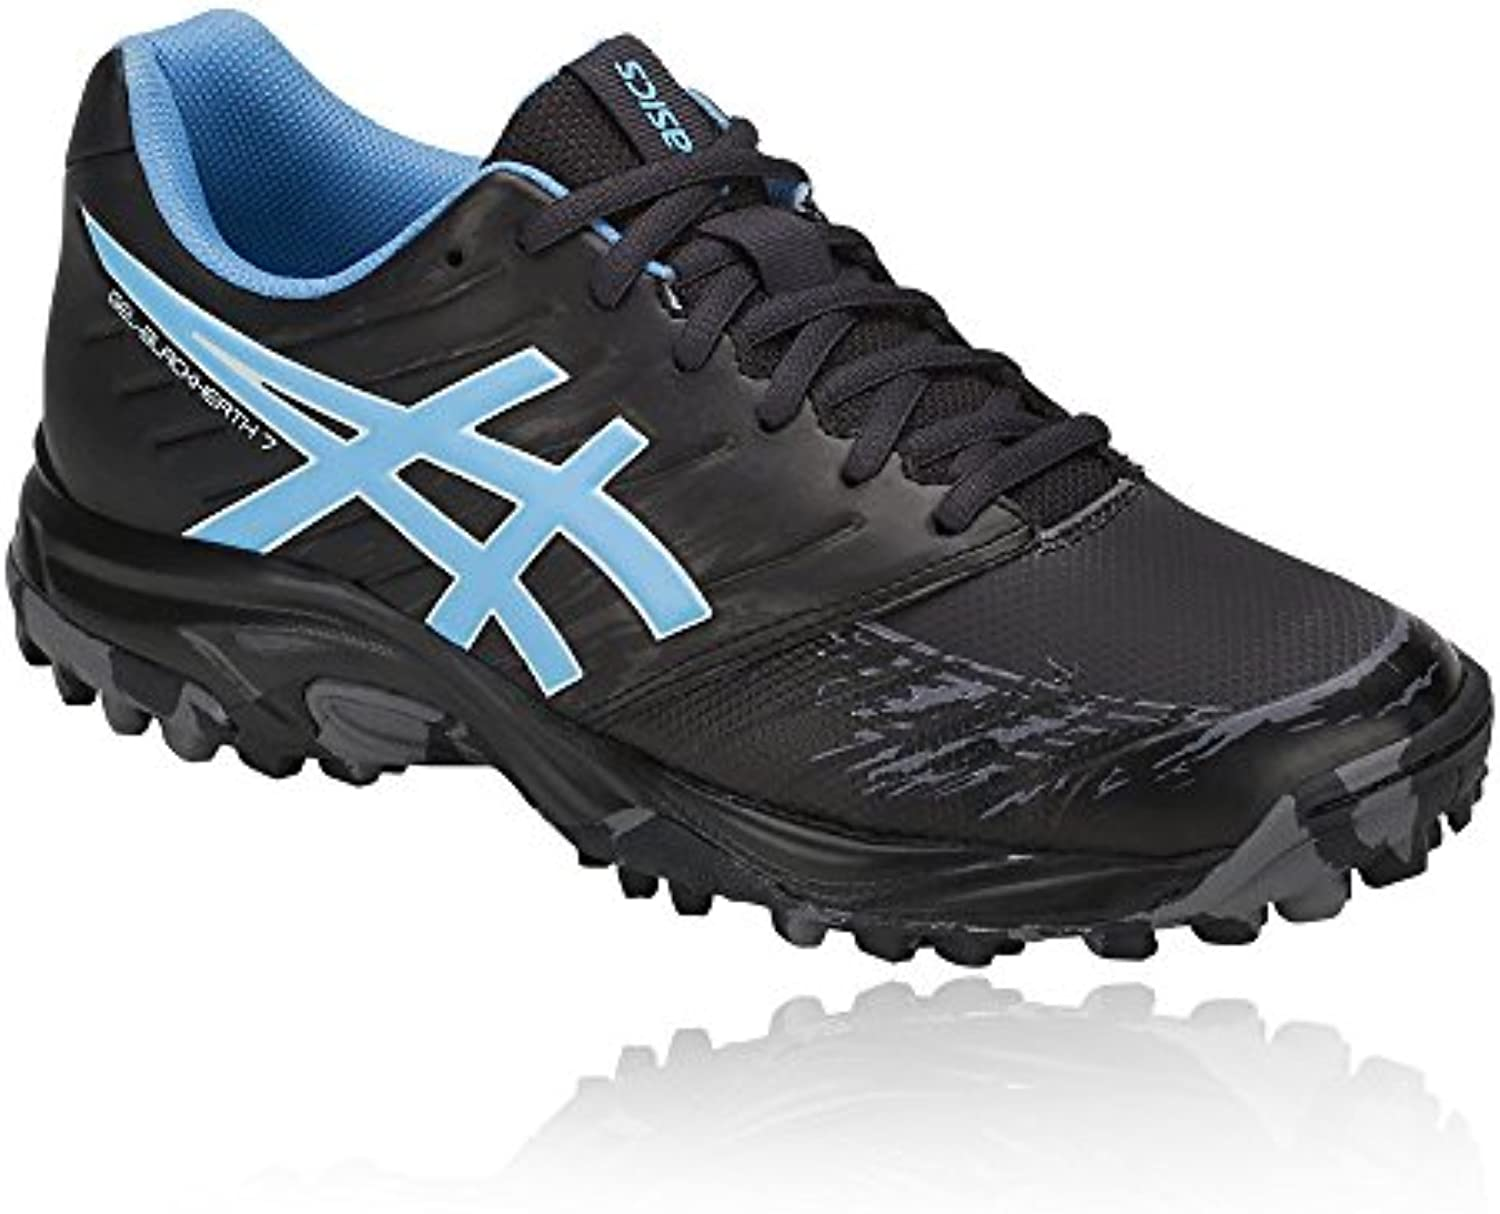 asics asics asics gel Noir heath 7 woHommes 's hockey chaussures aw18 b07dfbq5mt parent 1ef615